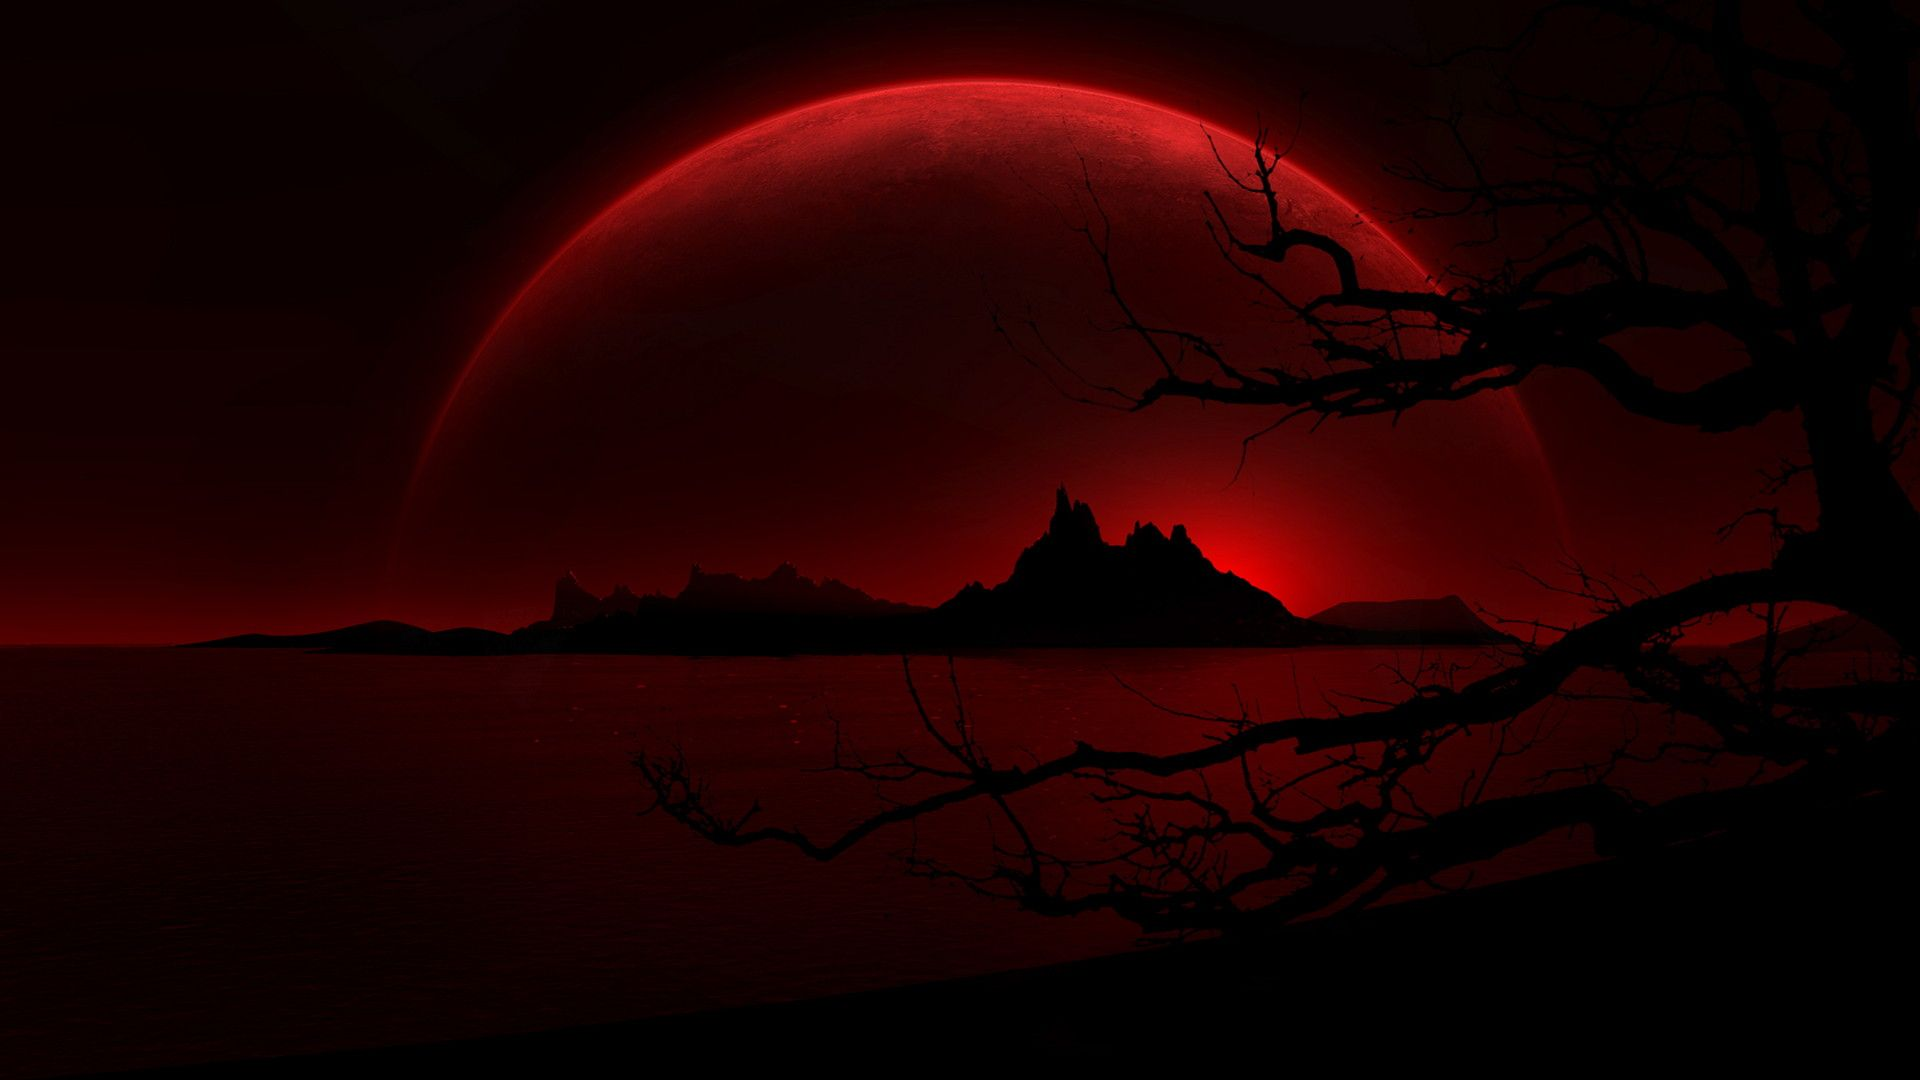 Black And Red Nature Wallpaper